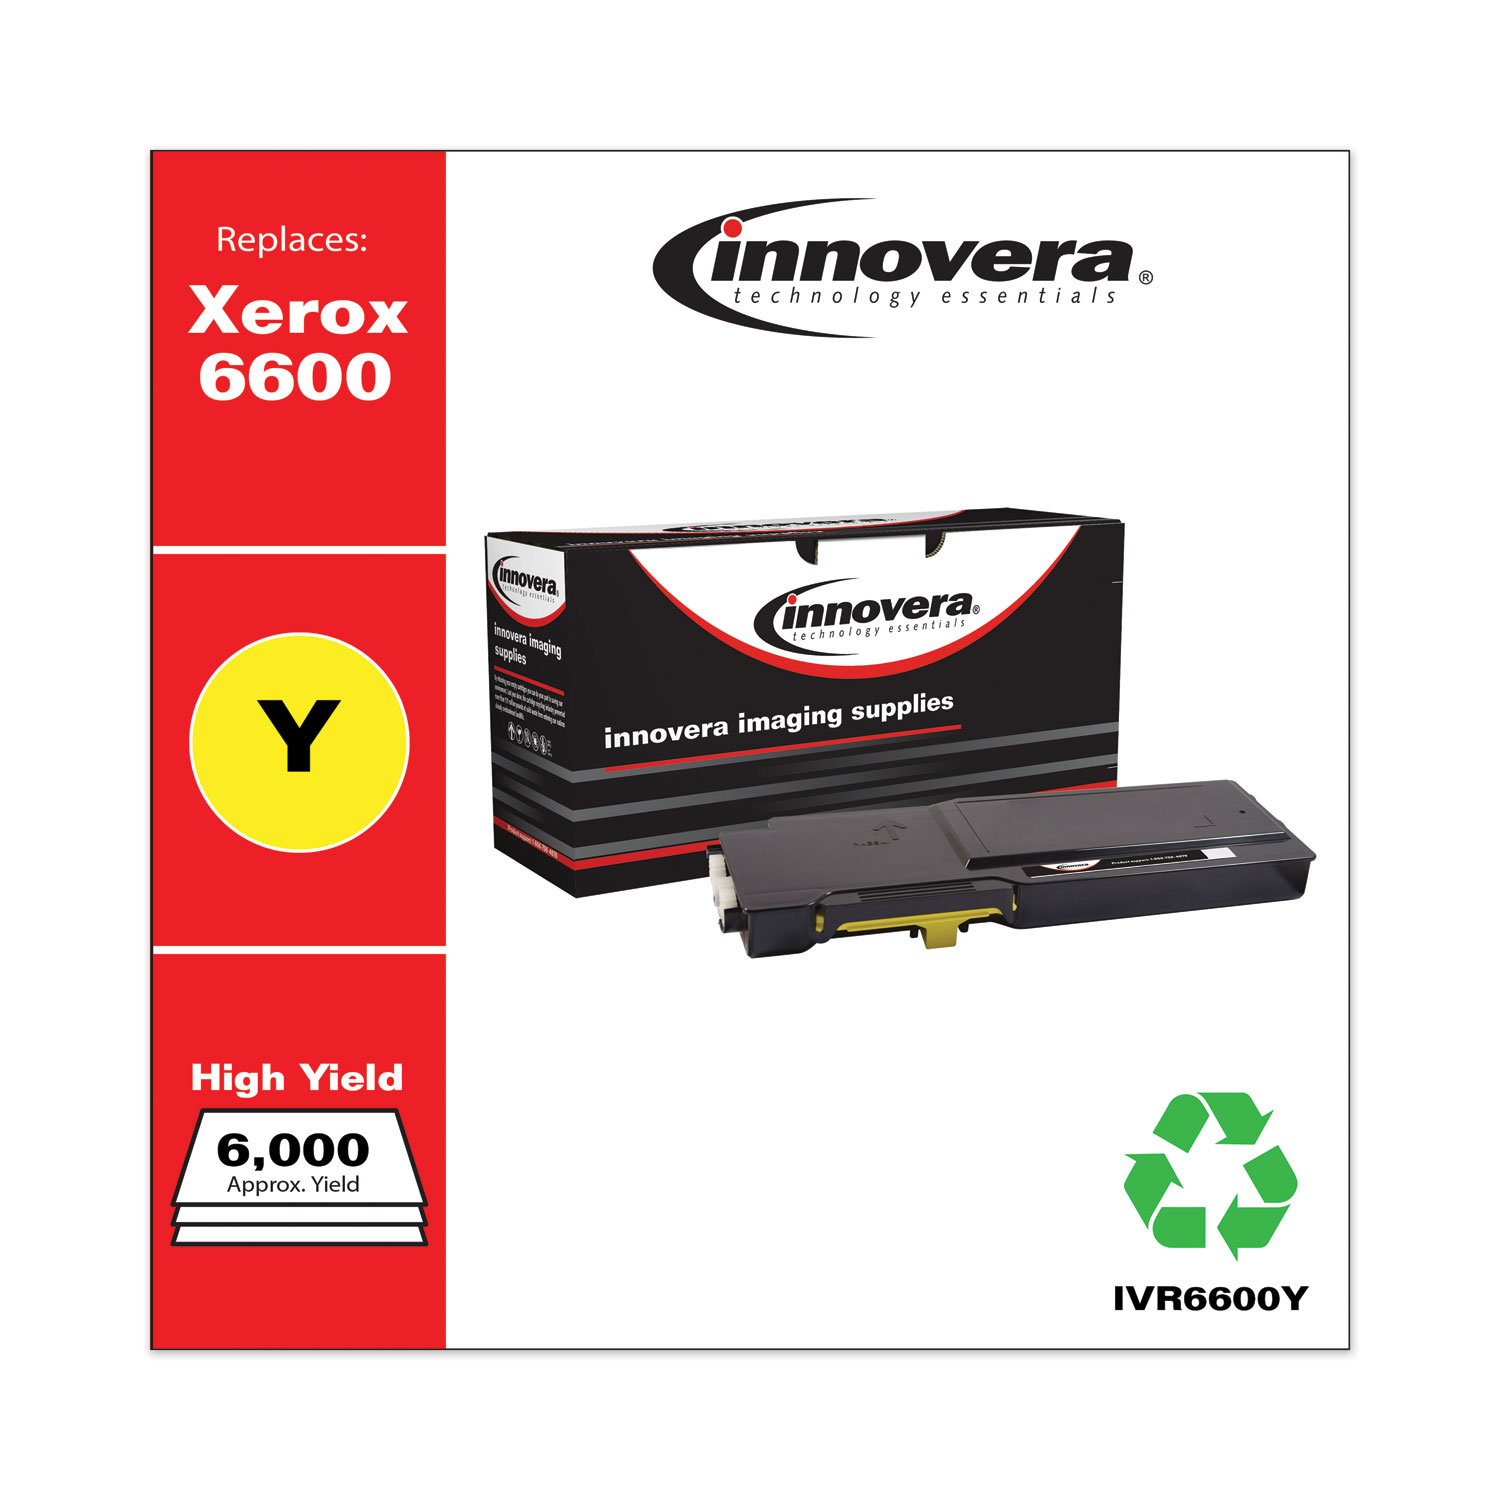 Remanufactured Yellow High-Yield Toner, Replacement for Xerox 6600 (106R02227), 6,000 Page-Yield IVR6600Y